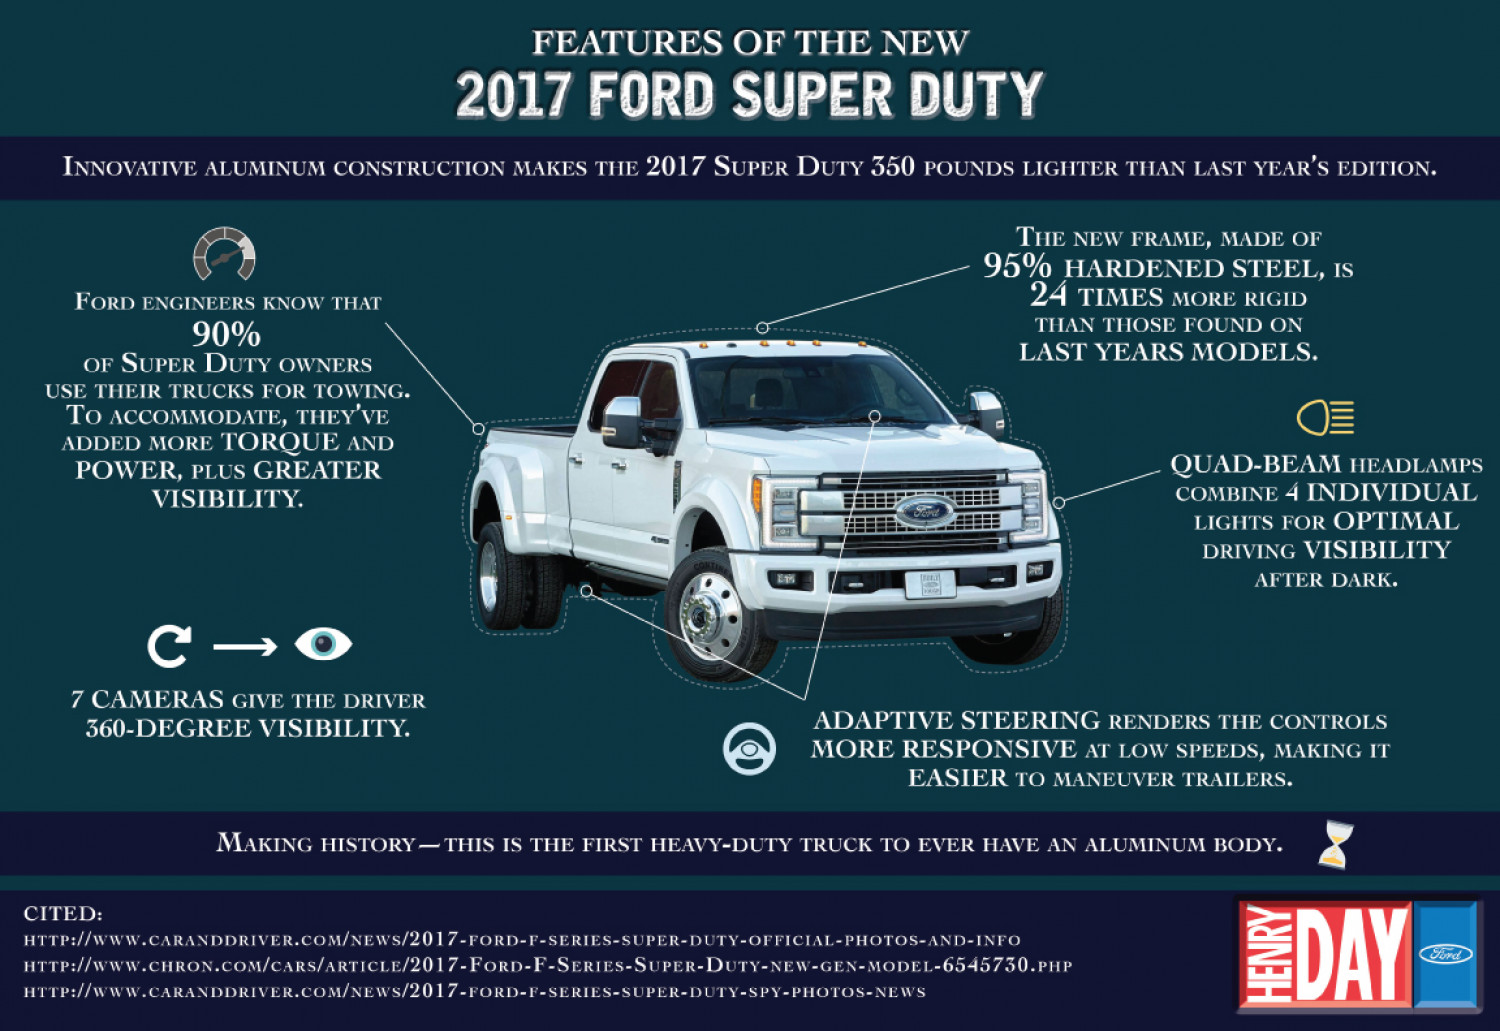 Awesome Features of the New 2017 Ford Super Duty Infographic